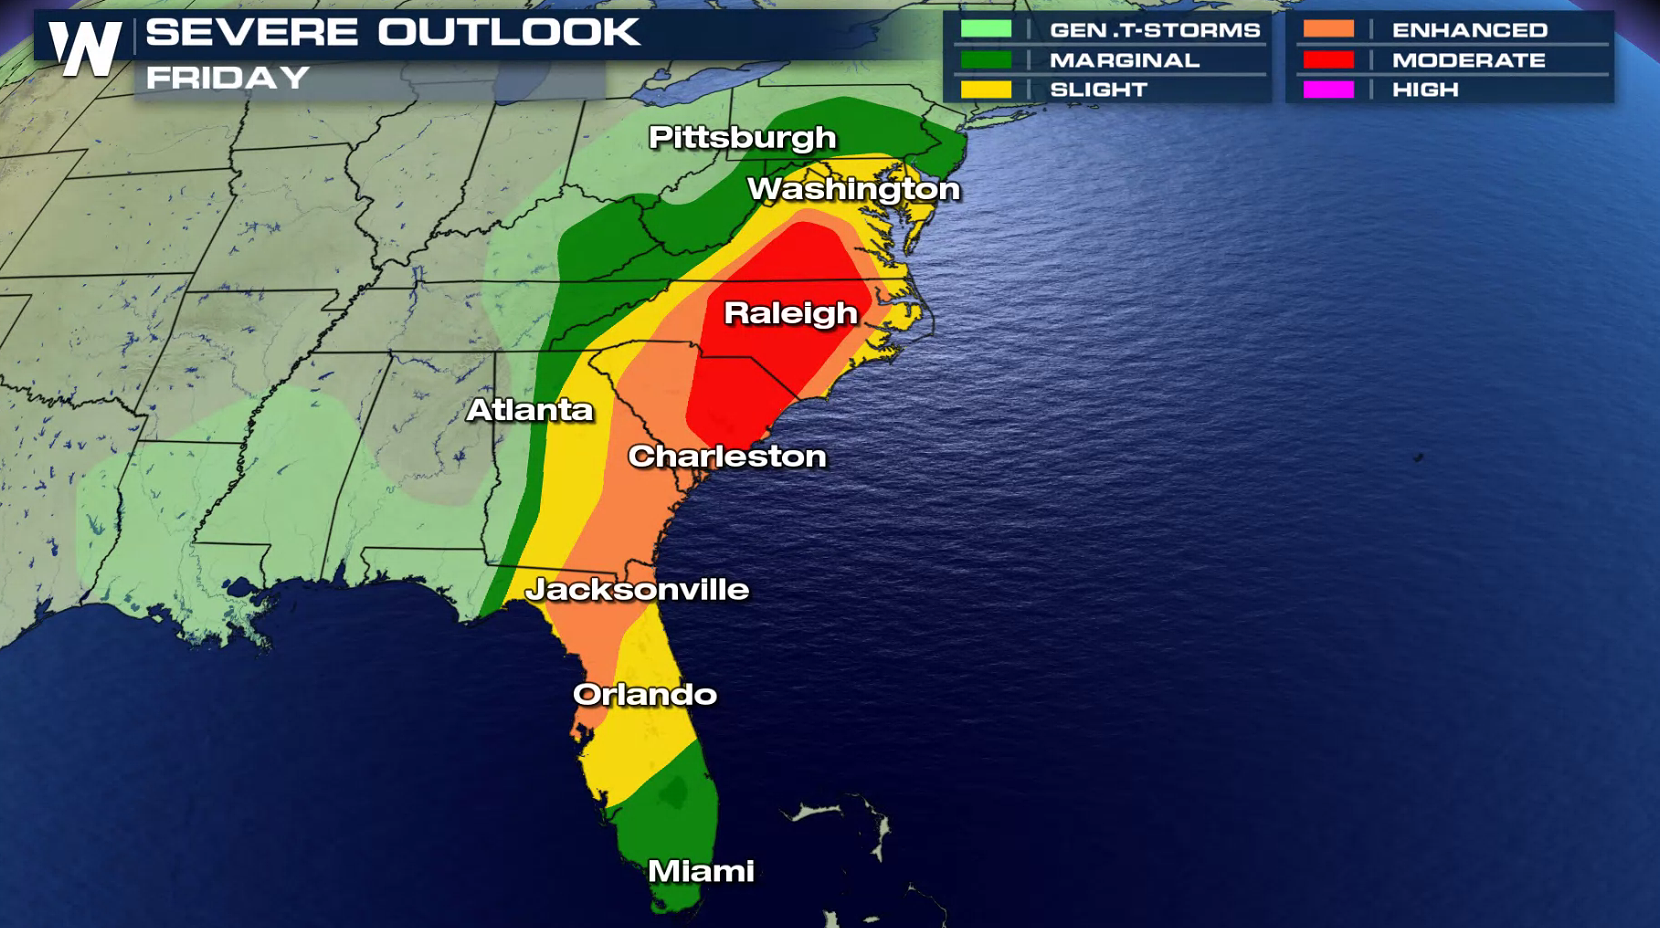 Damaging Winds and Tornadoes Possible for the East Coast ... on thunderstorm risk map, disaster risk map, flood risk map, social media risk map, world bank map, travel risk map, enterprise risk map, tsunami risk map, earthquake risk map, heat risk map,